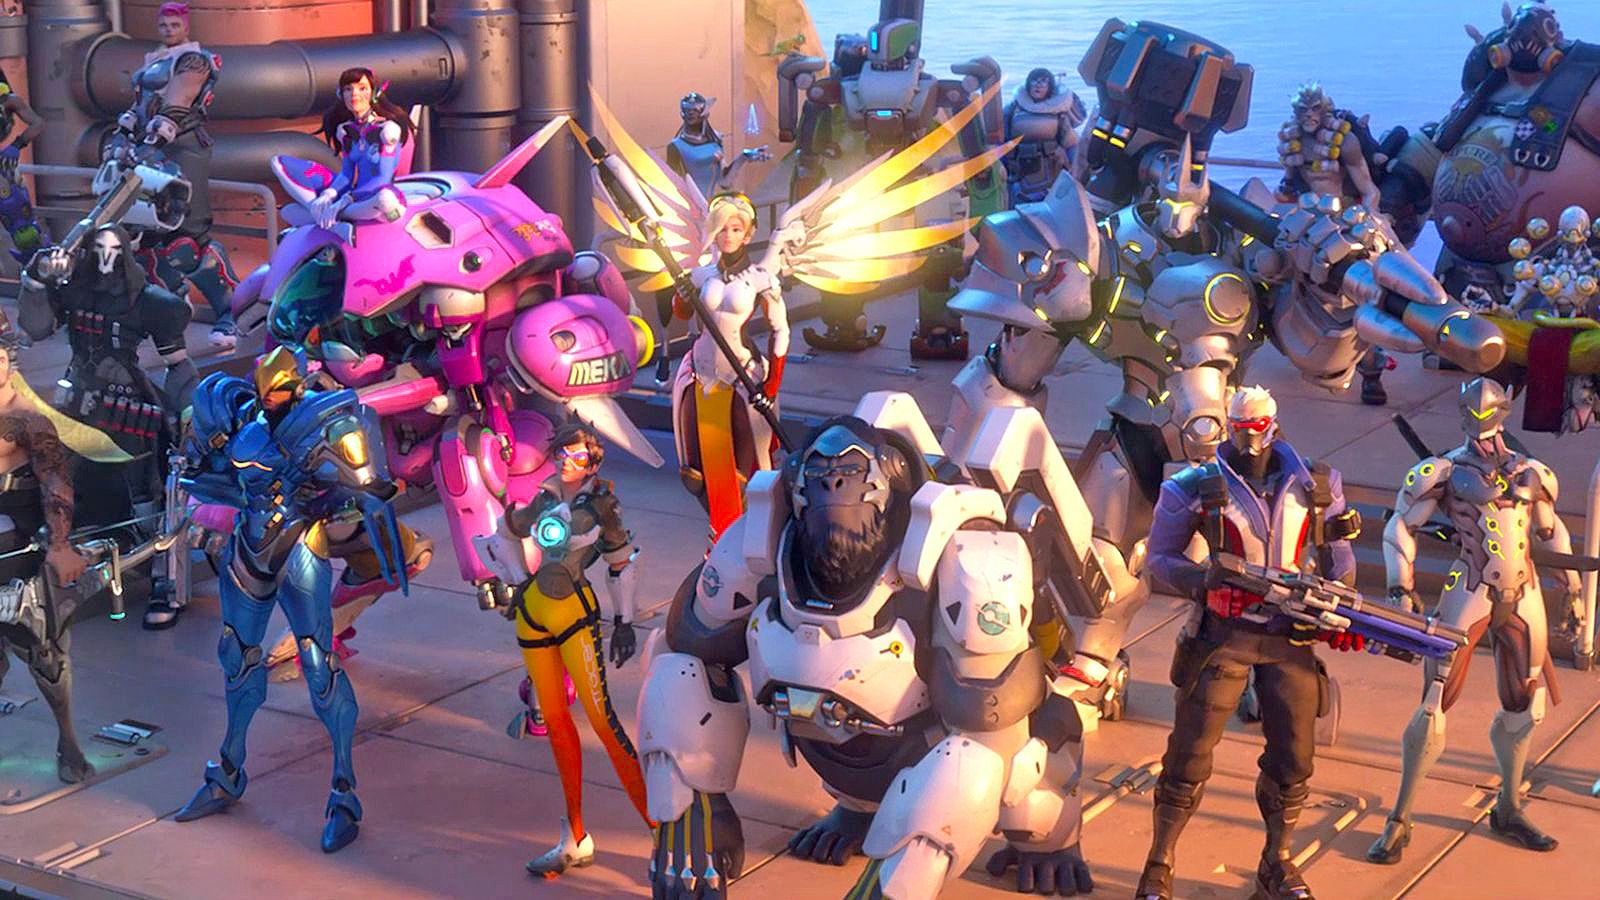 Blizzard teases new Overwatch skins, maps and more